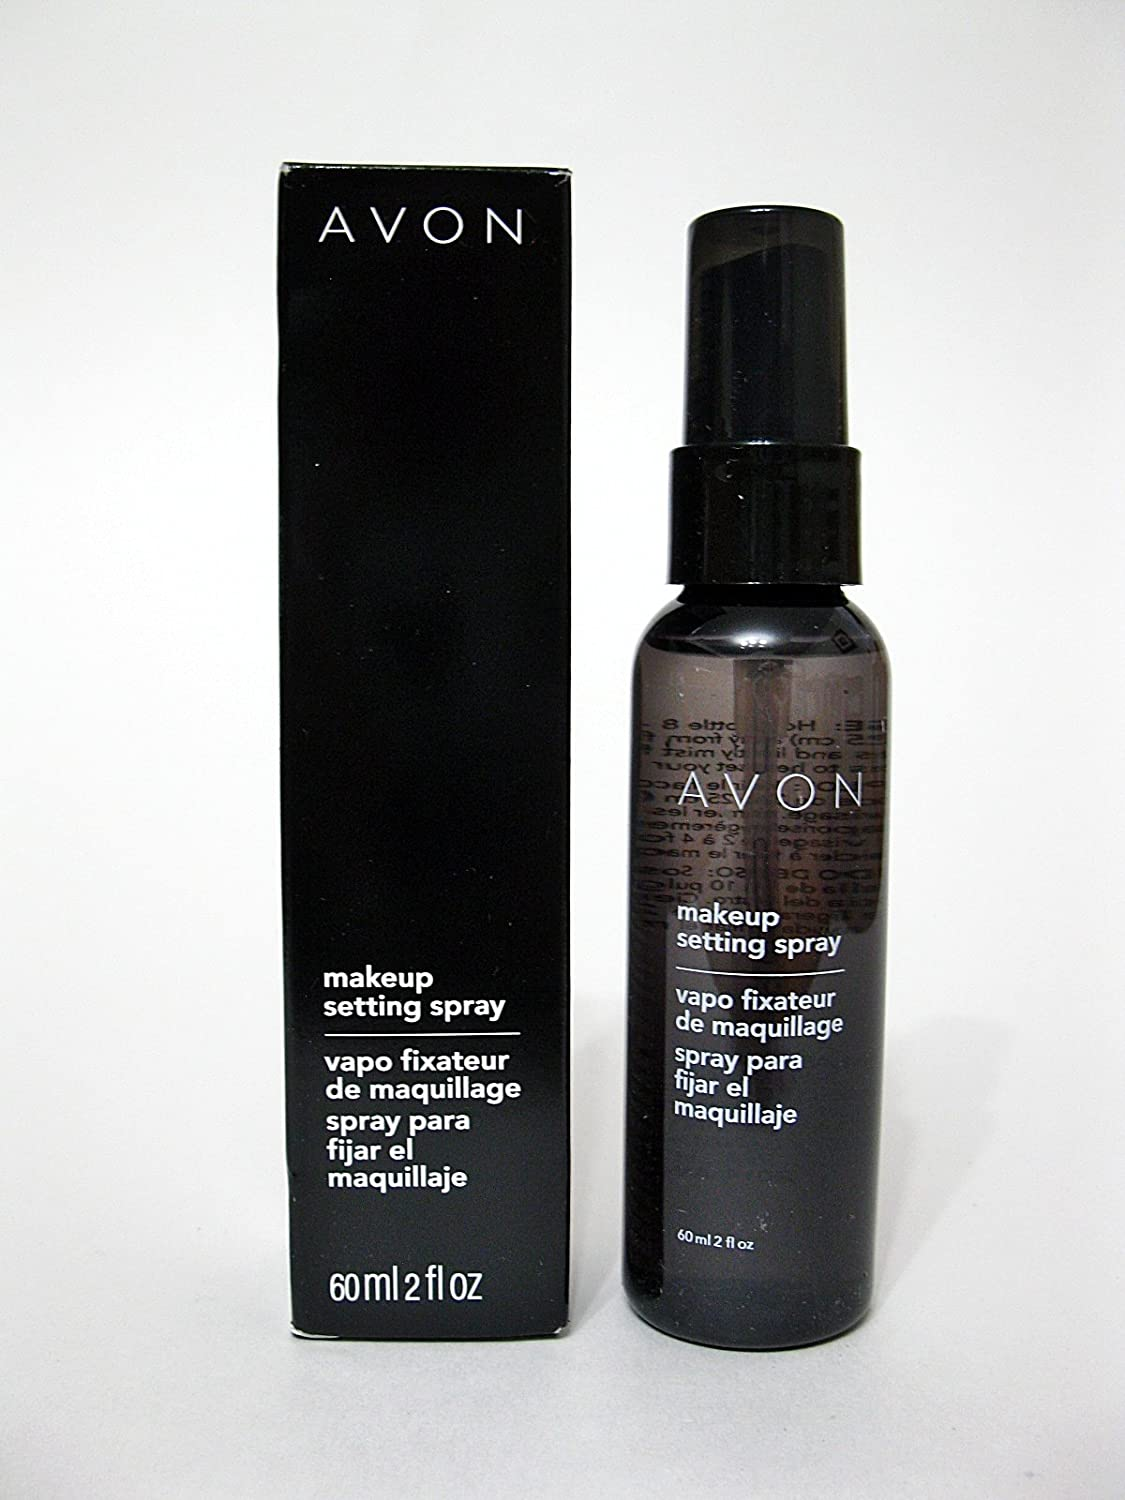 Avon MAKEUP SETTING SPRAY 60ml Avon Products Inc